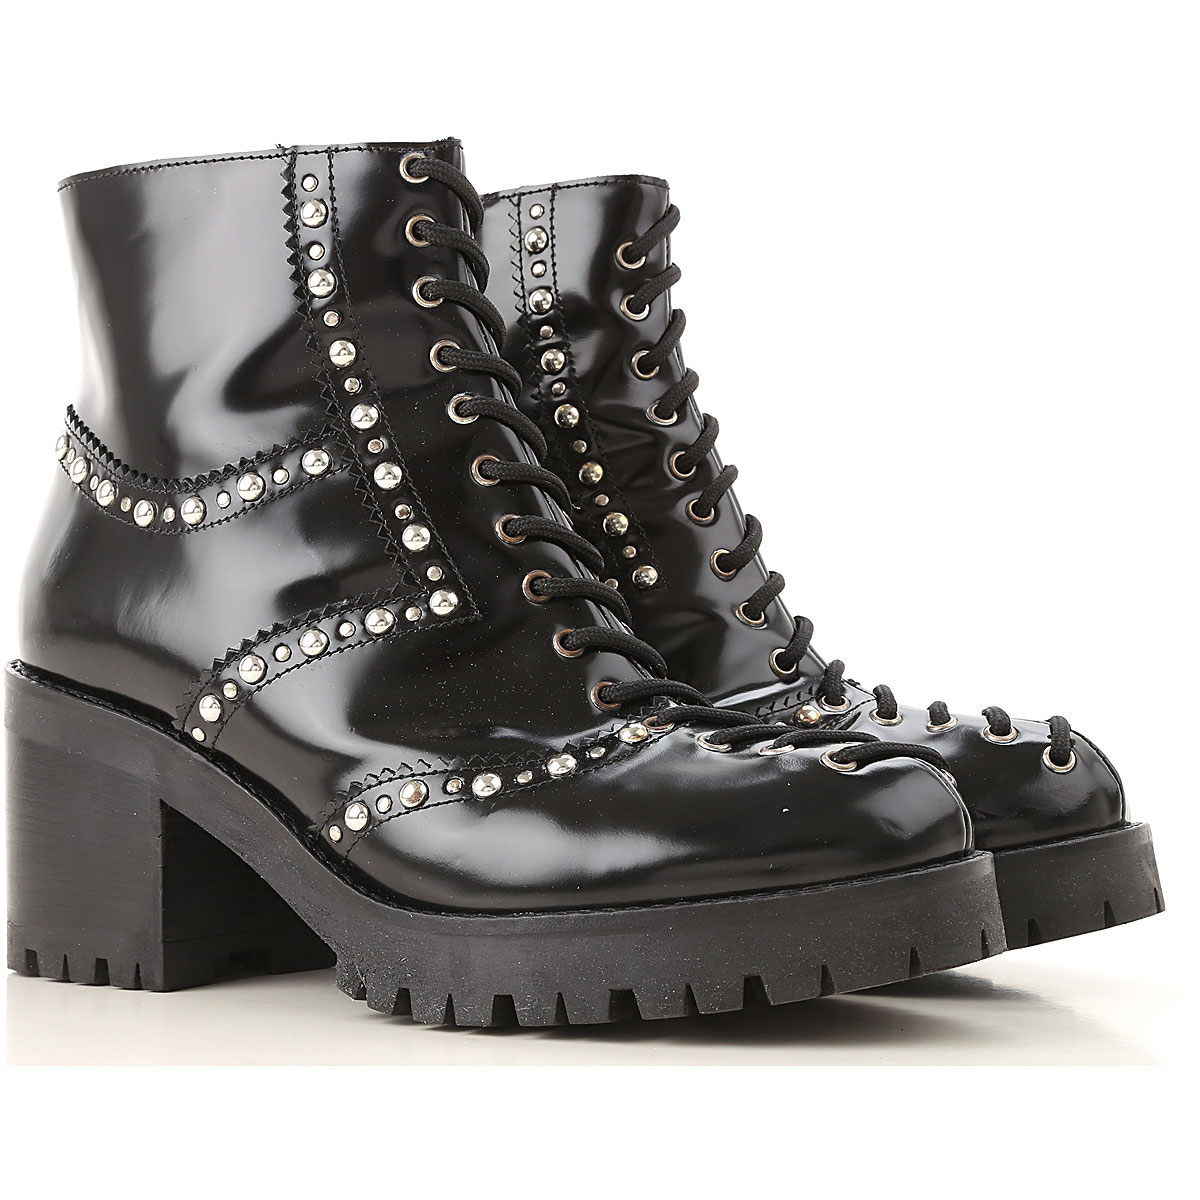 Alexander McQueen McQ Boots for Women, Booties On Sale in Outlet, Black, Leather, 2019, 6 7